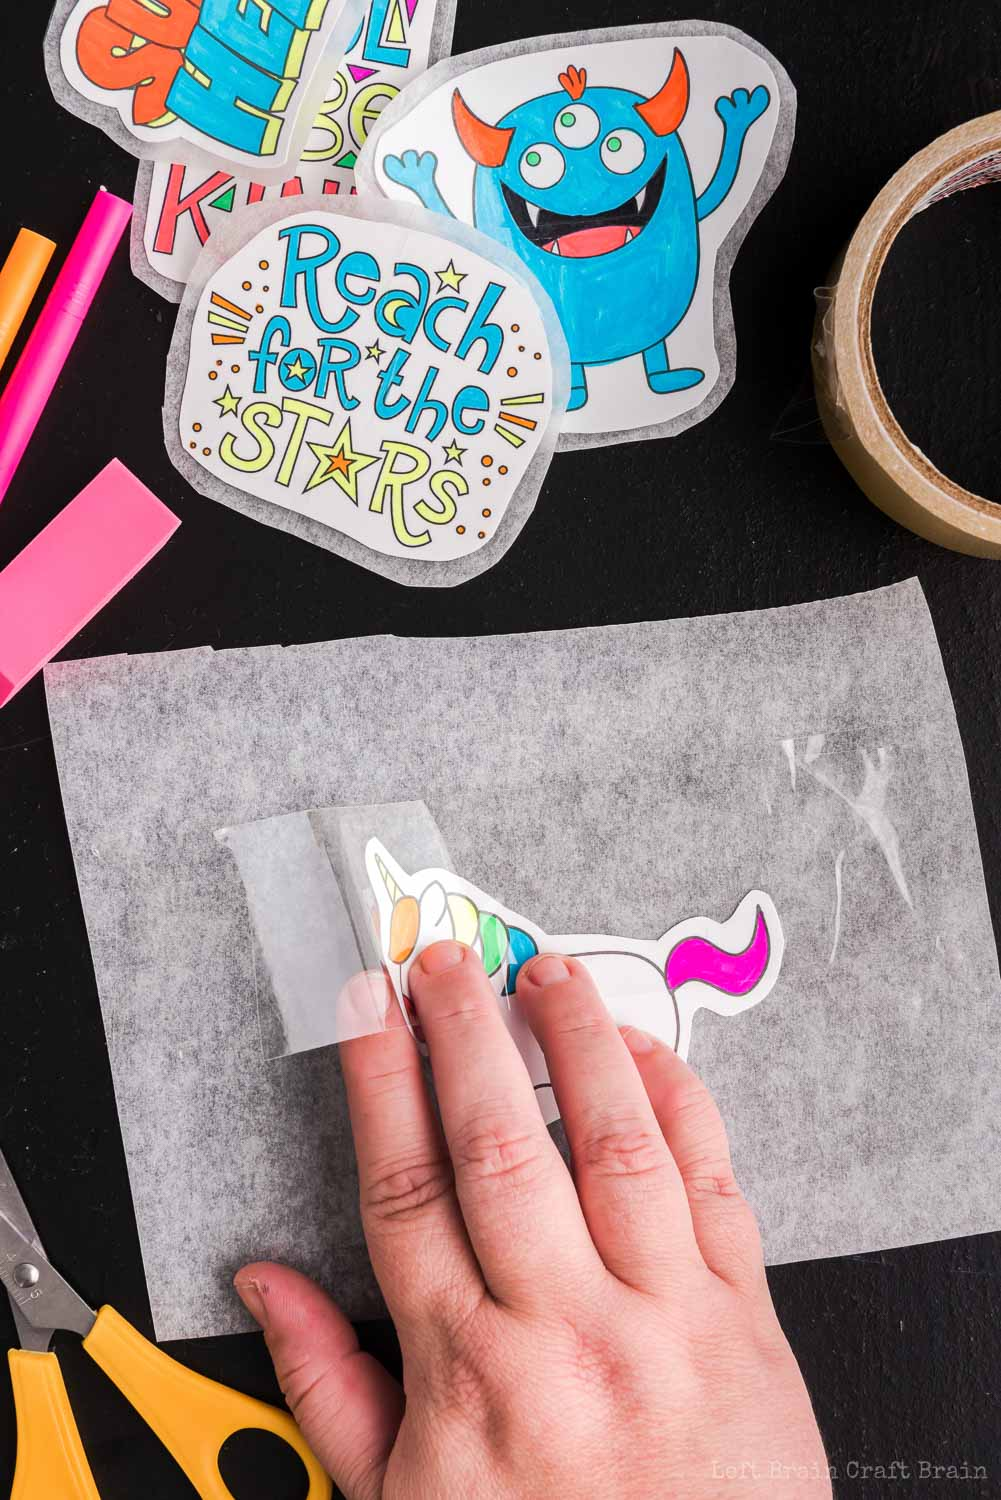 Place clear tape over design - Make your own DIY stickers with a super easy process using basic supplies. Kids will love this activity. They're fun to add to presents, too.